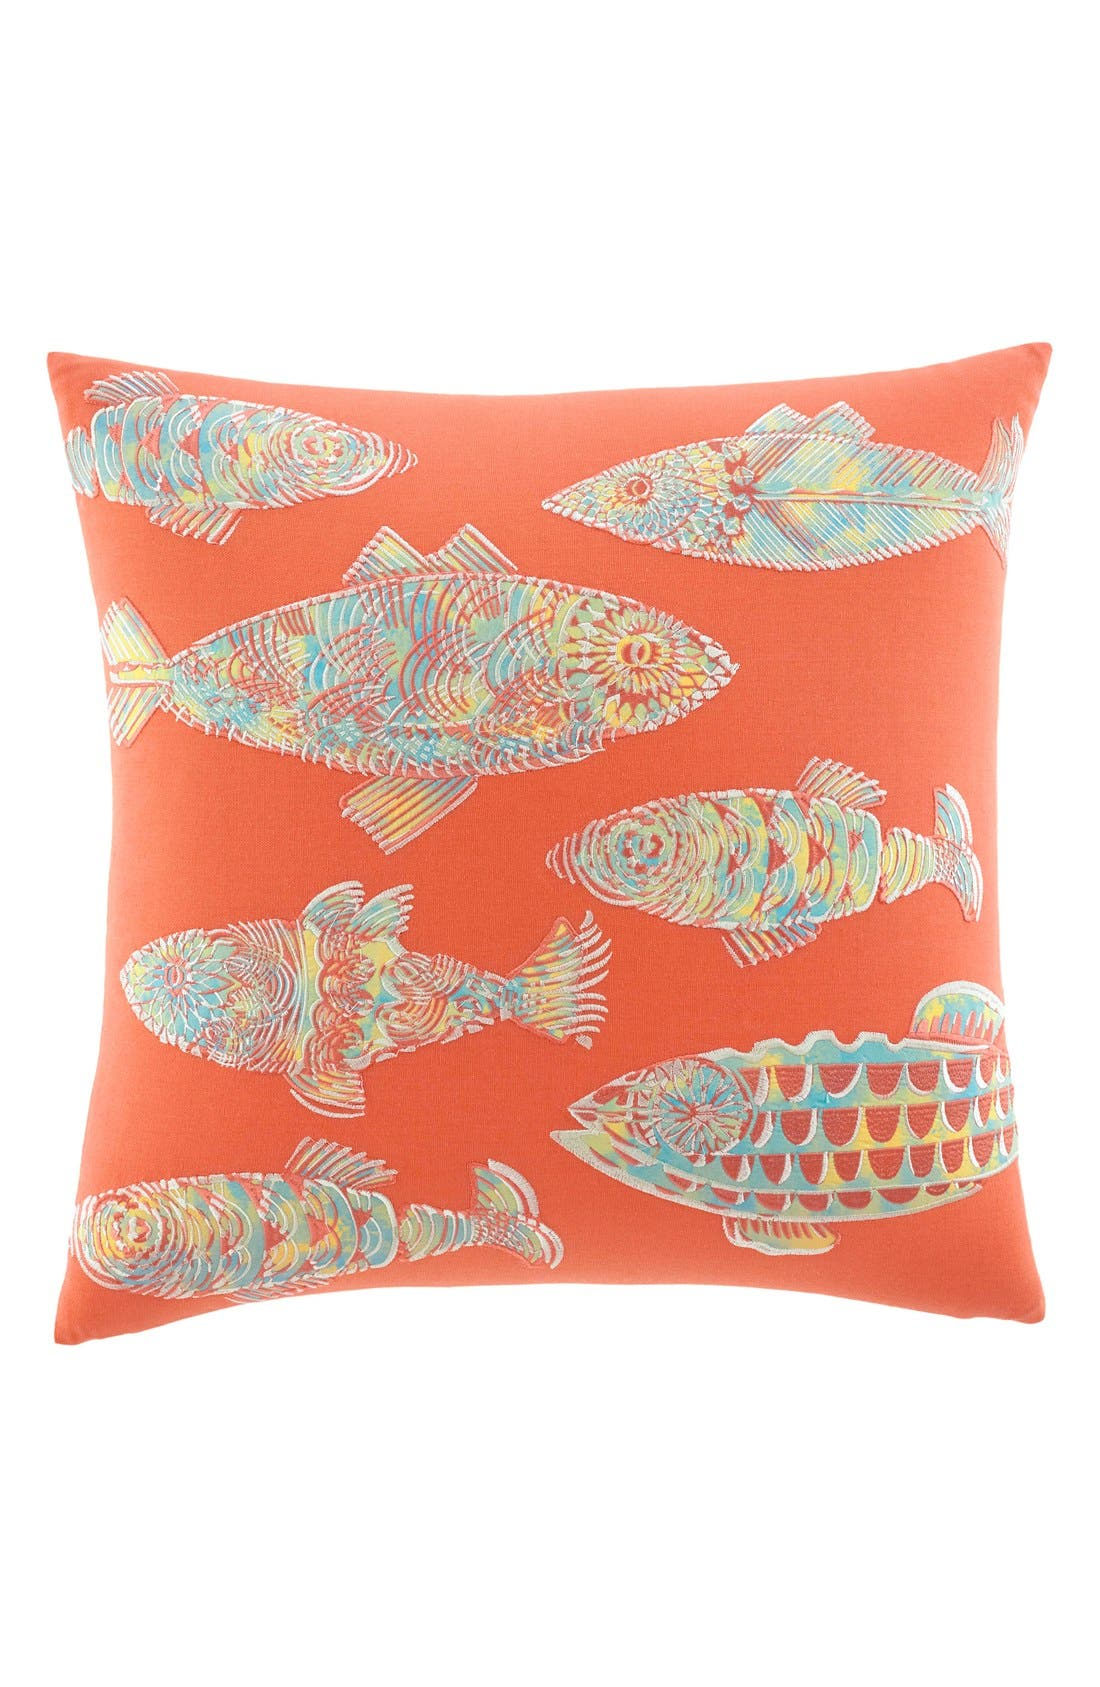 A vibrant school of embroidered fish swims across a striking accent pillow guaranteed to add a playful pop of color to any interior space. Style Name: Tommy Bahama \\\'Batic Fish\\\' Pillow. Style Number: 5195012. Available in stores.